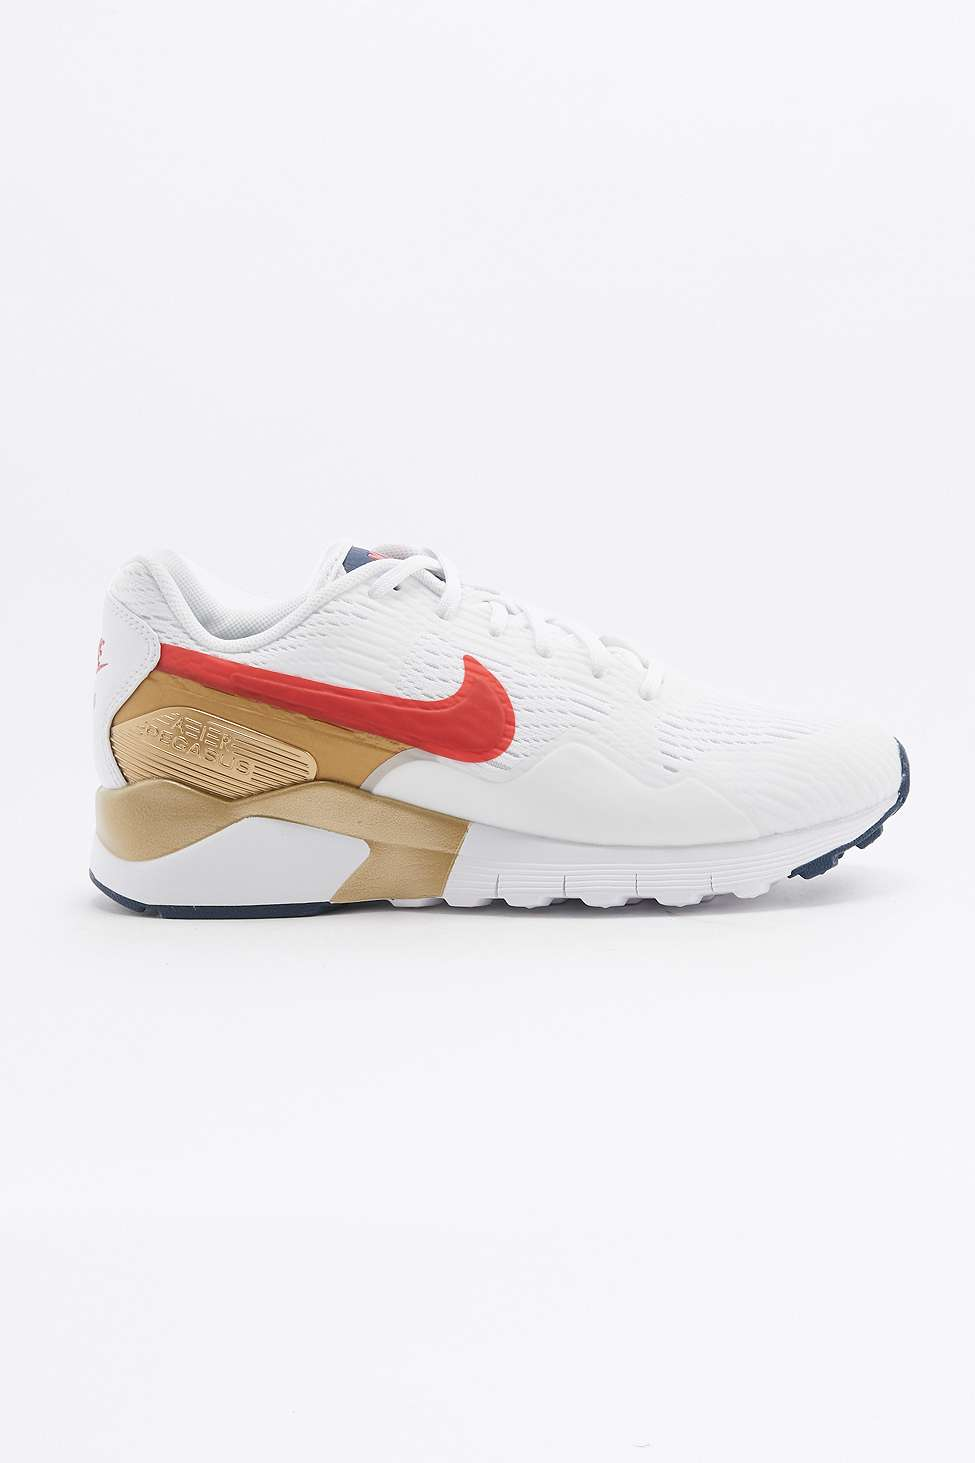 new style 5dc85 b8bee ... Nike Air Pegasus 92 Red Gold and Blue Trainers 2 ...